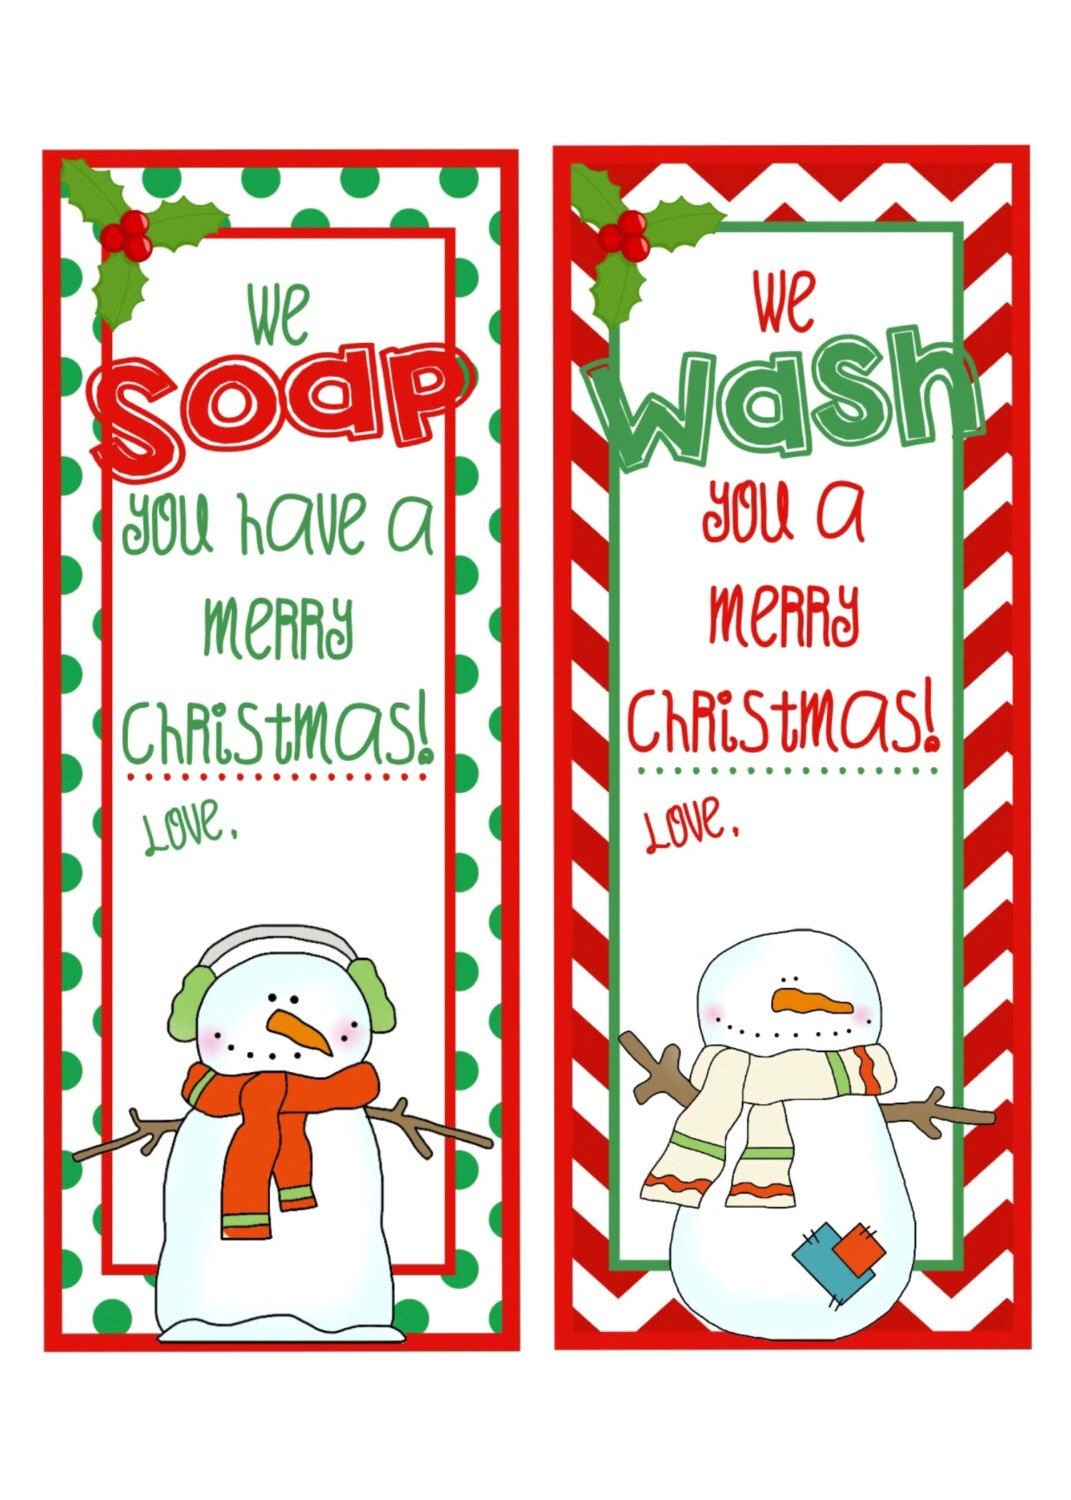 Pinkatie Gorman On Gifts And Decorations | Pinterest | Gifts - We Wash You A Merry Christmas Free Printable